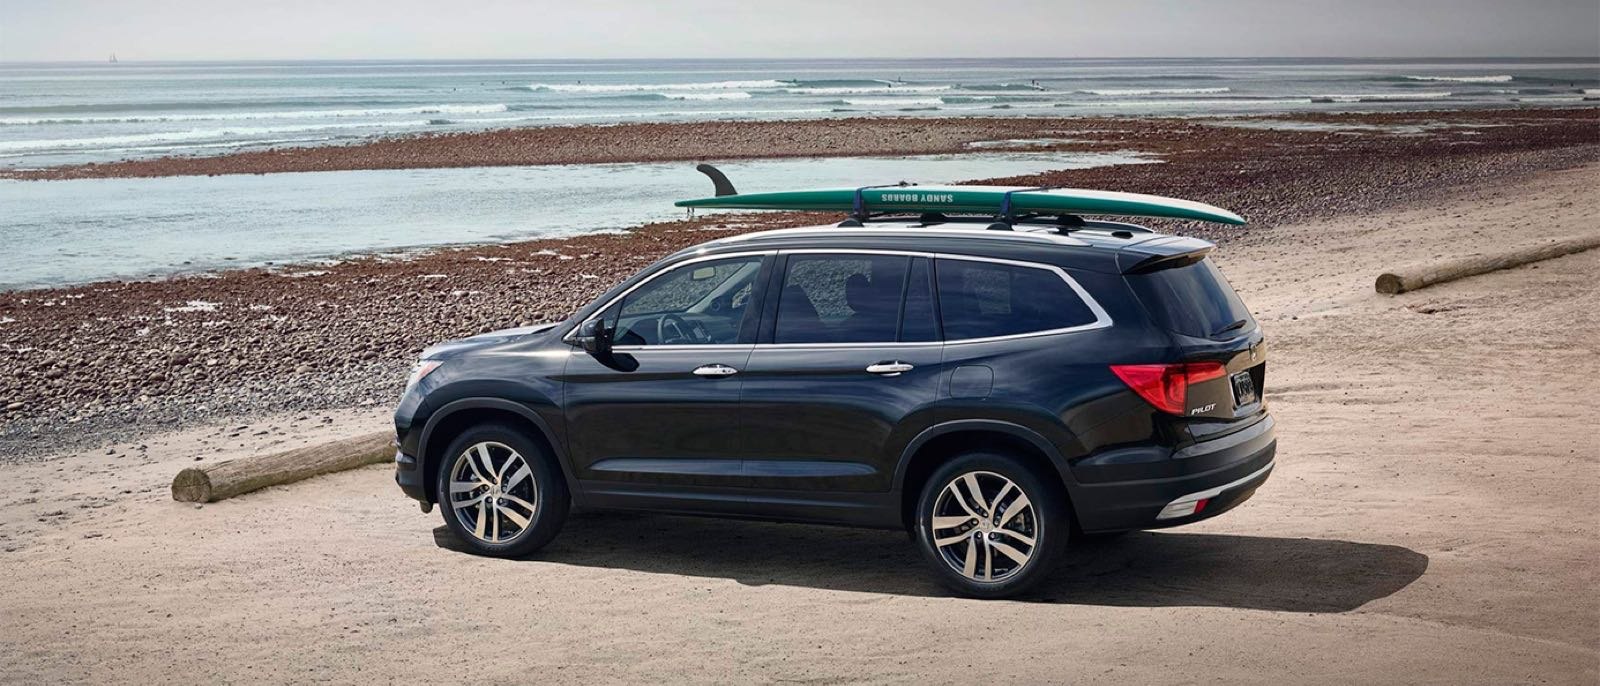 2017 Honda Pilot By Lake